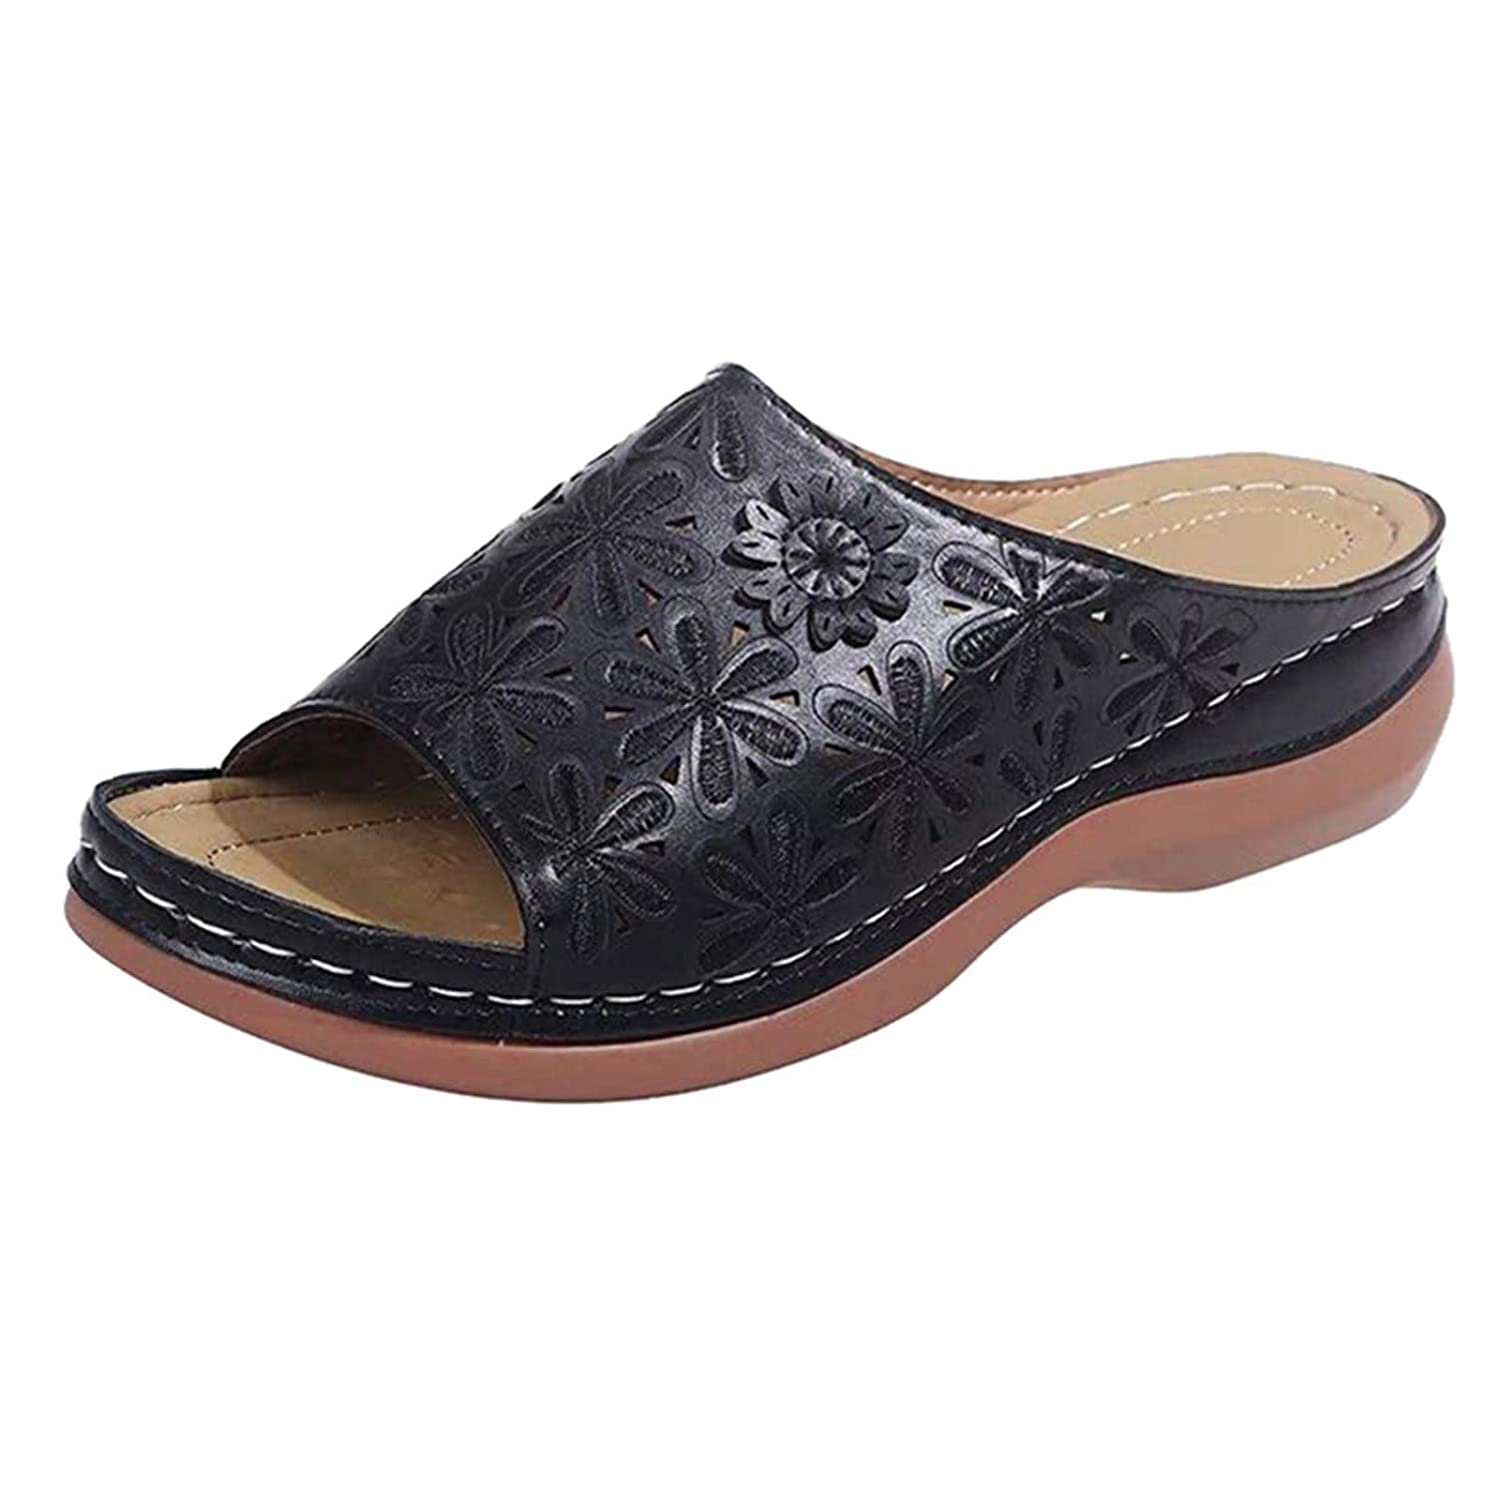 Women's Open Toe Classic Roman Online limited product Sandals Style Stretch free shipping Flatform Sl